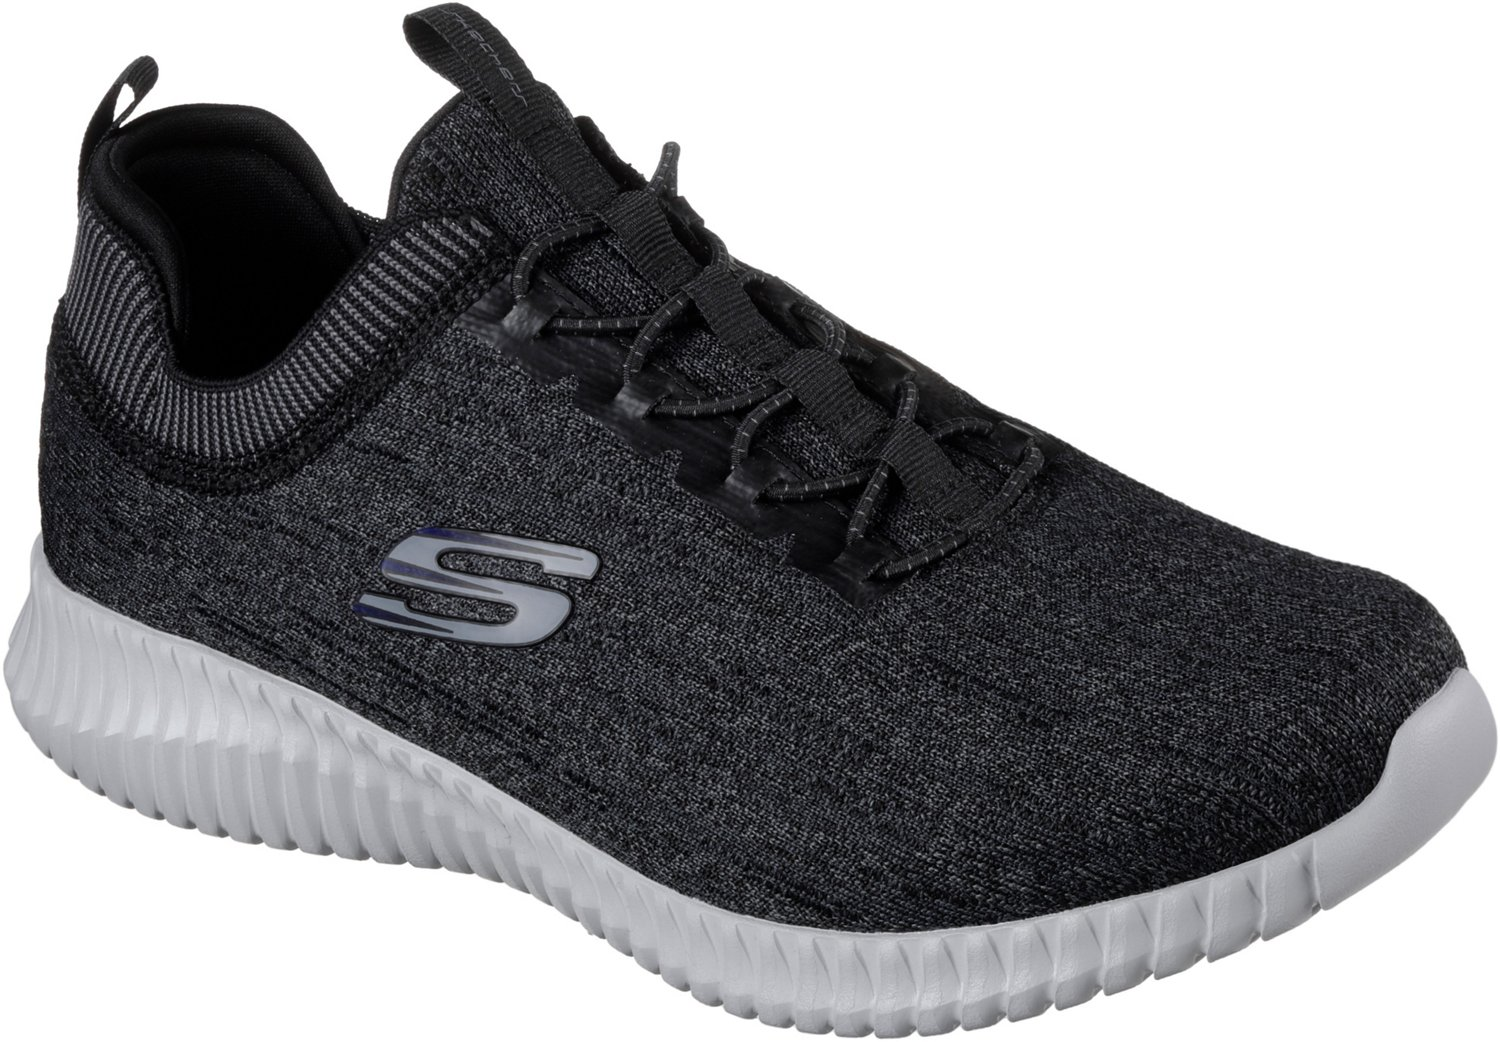 8288a5183324e Display product reviews for SKECHERS Men s Elite Flex Hartnell Casual  Training Shoes